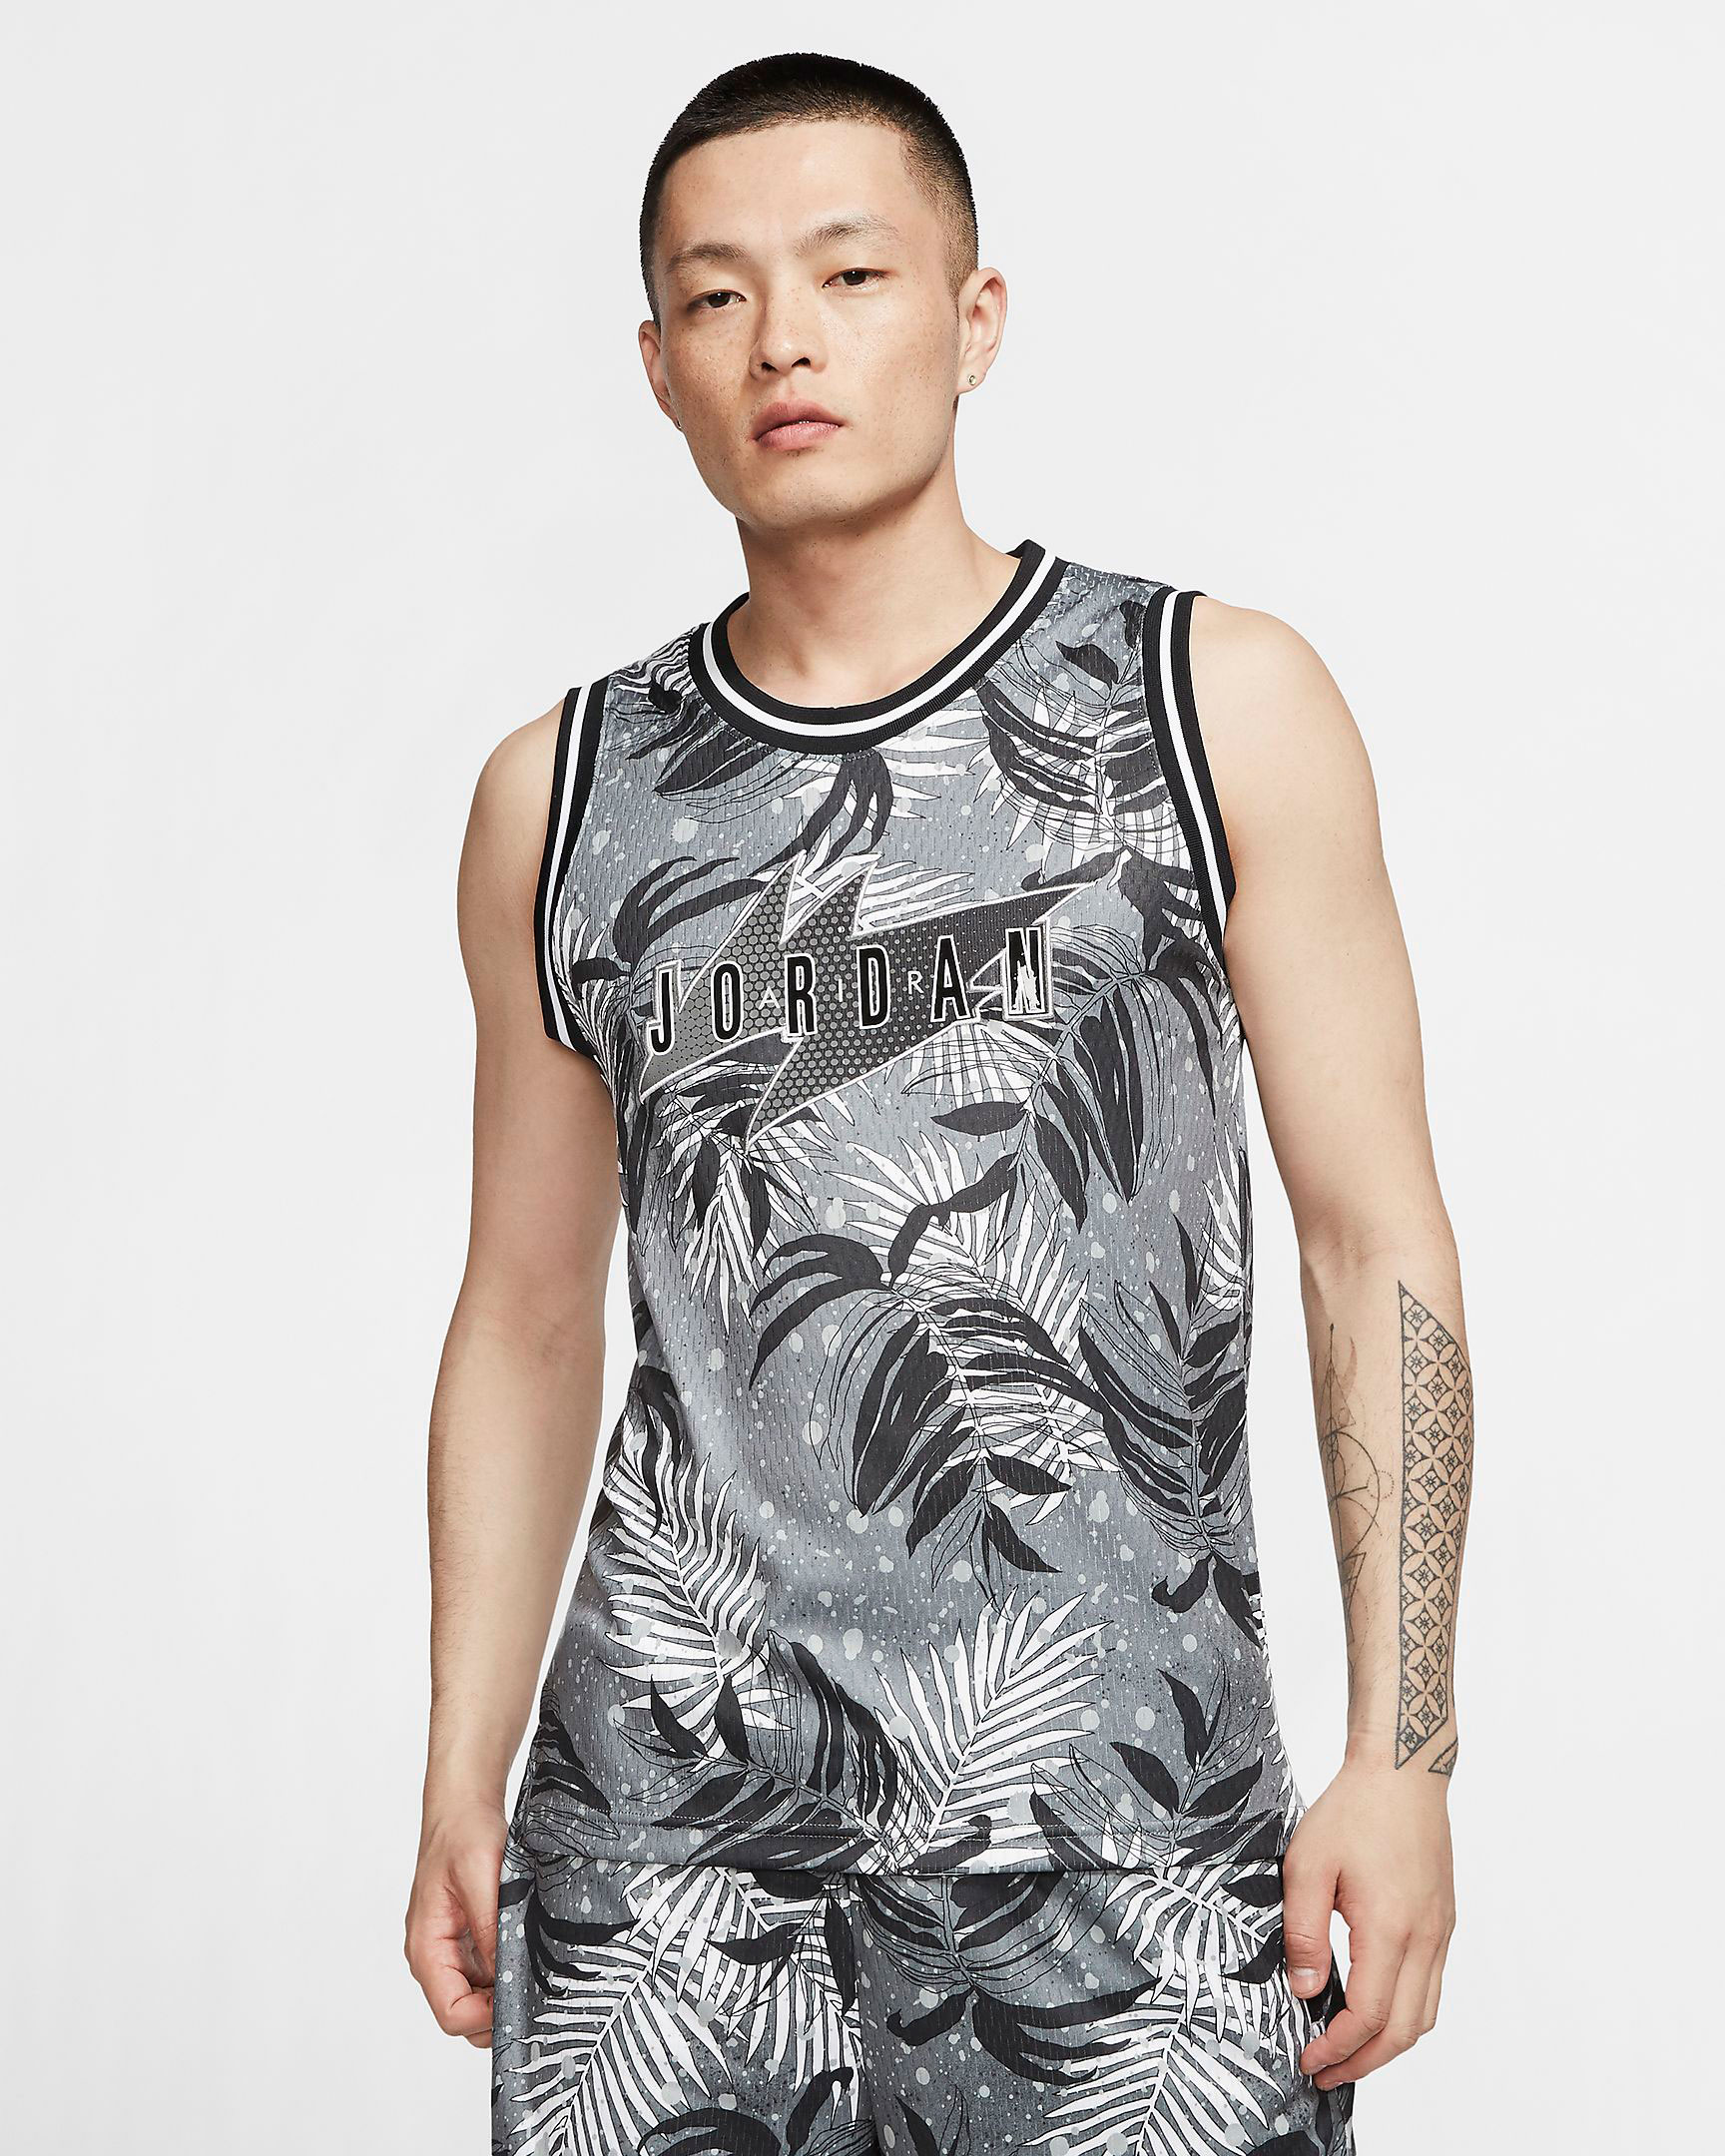 jordan-poolside-floral-jersey-black-grey